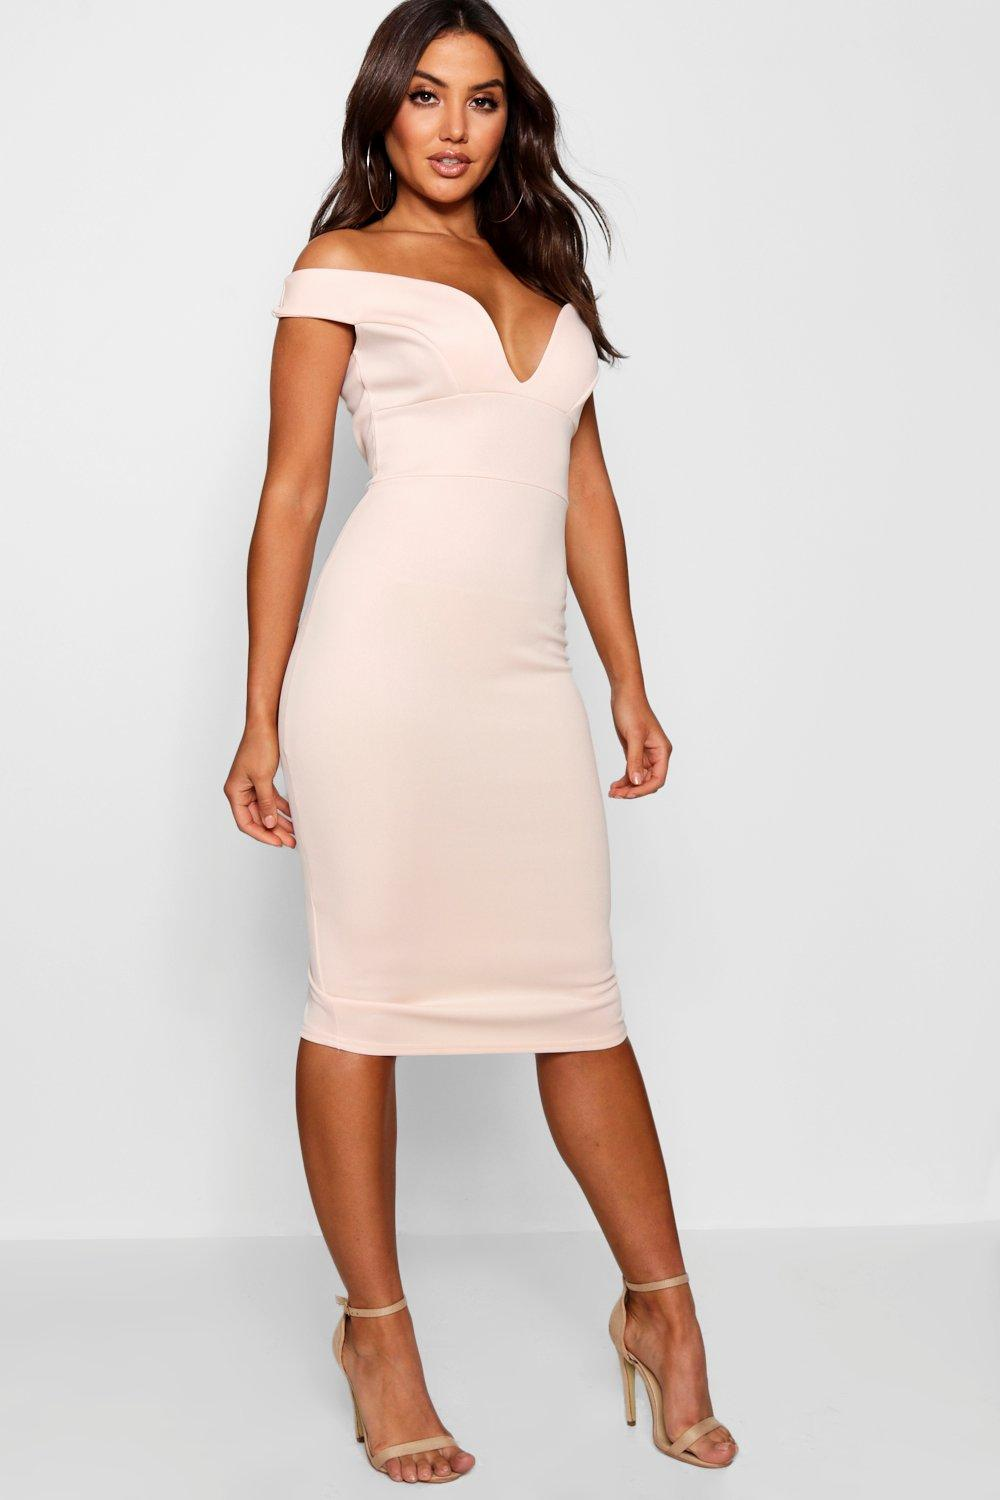 ac1d77fb7185 Sweetheart Off Shoulder Bodycon Midi Dress. Hover to zoom